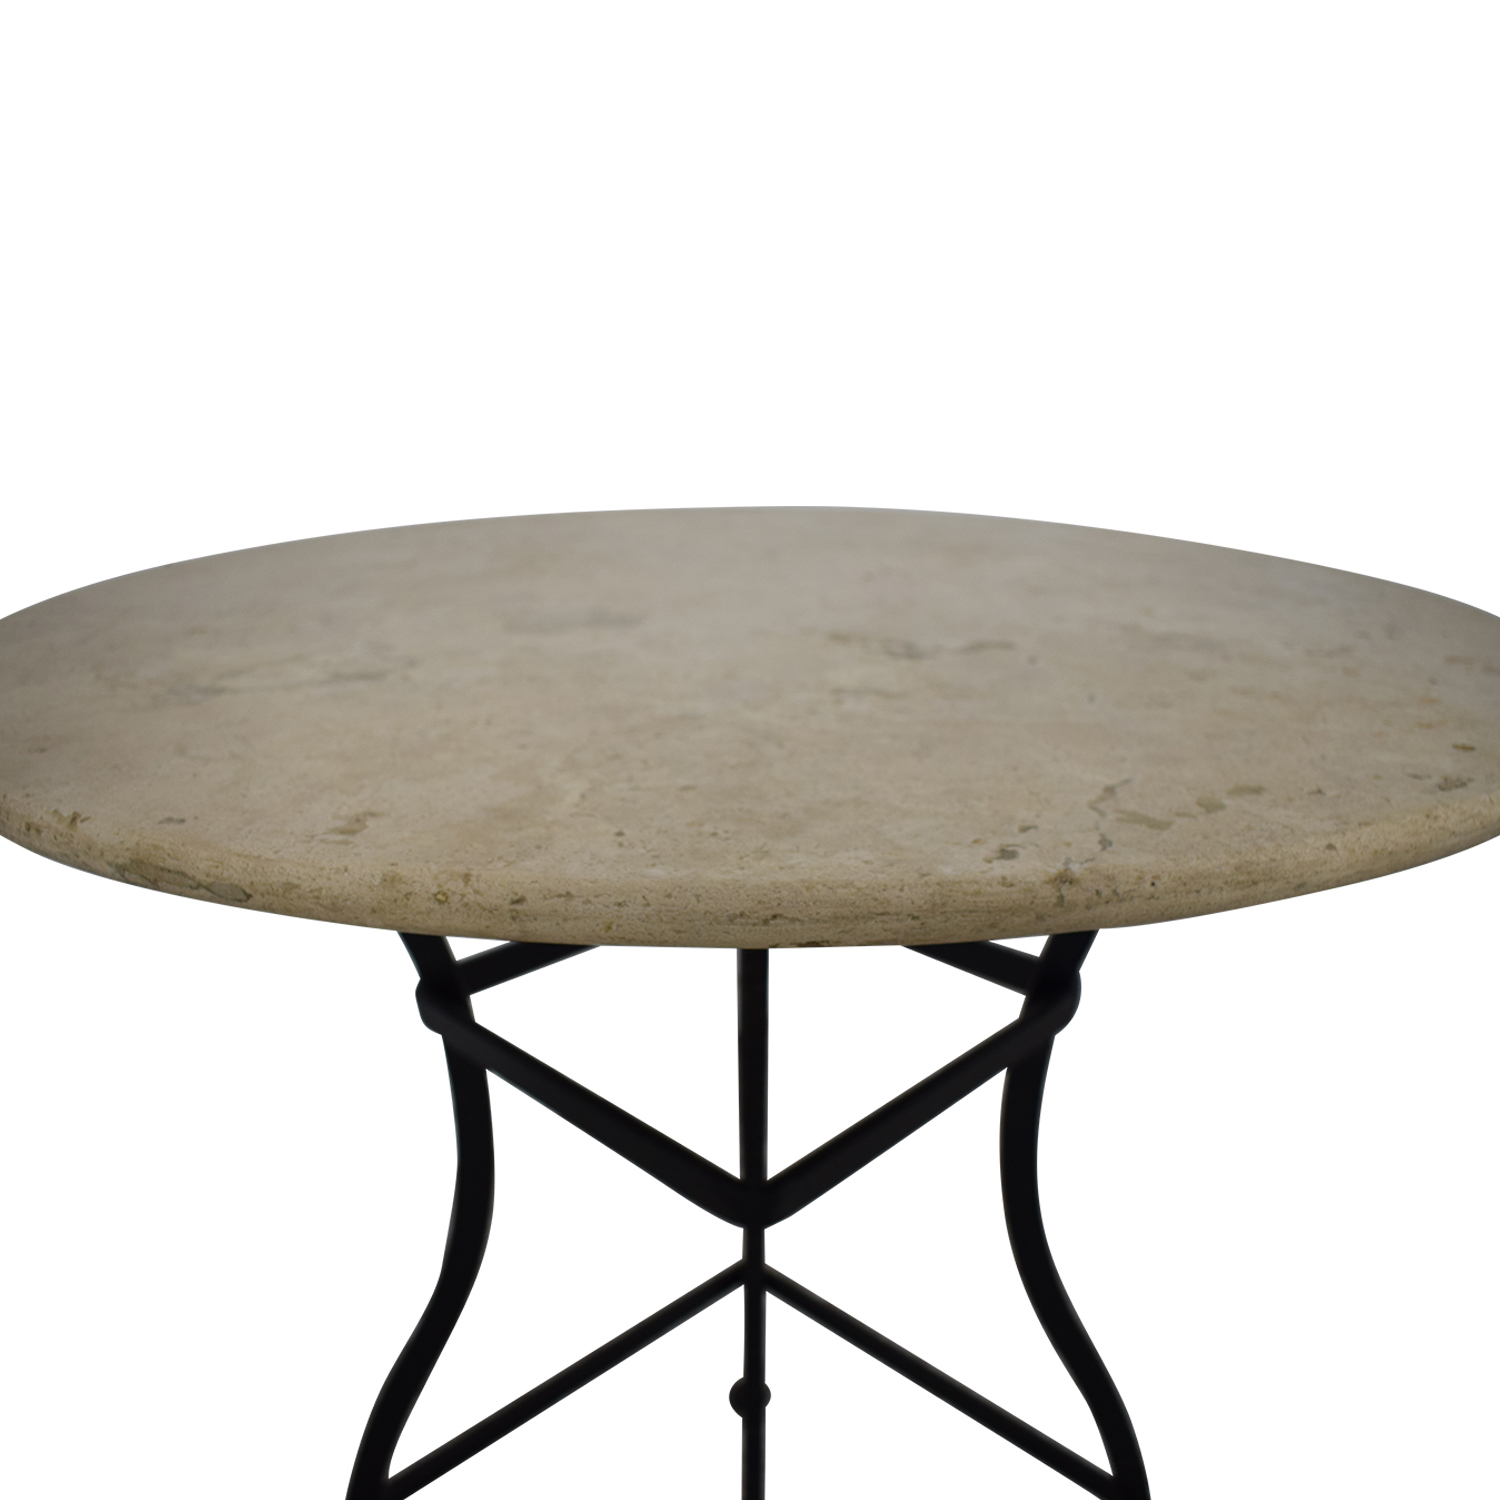 Crate & Barrel Crate & Barrel Bistro Table for sale